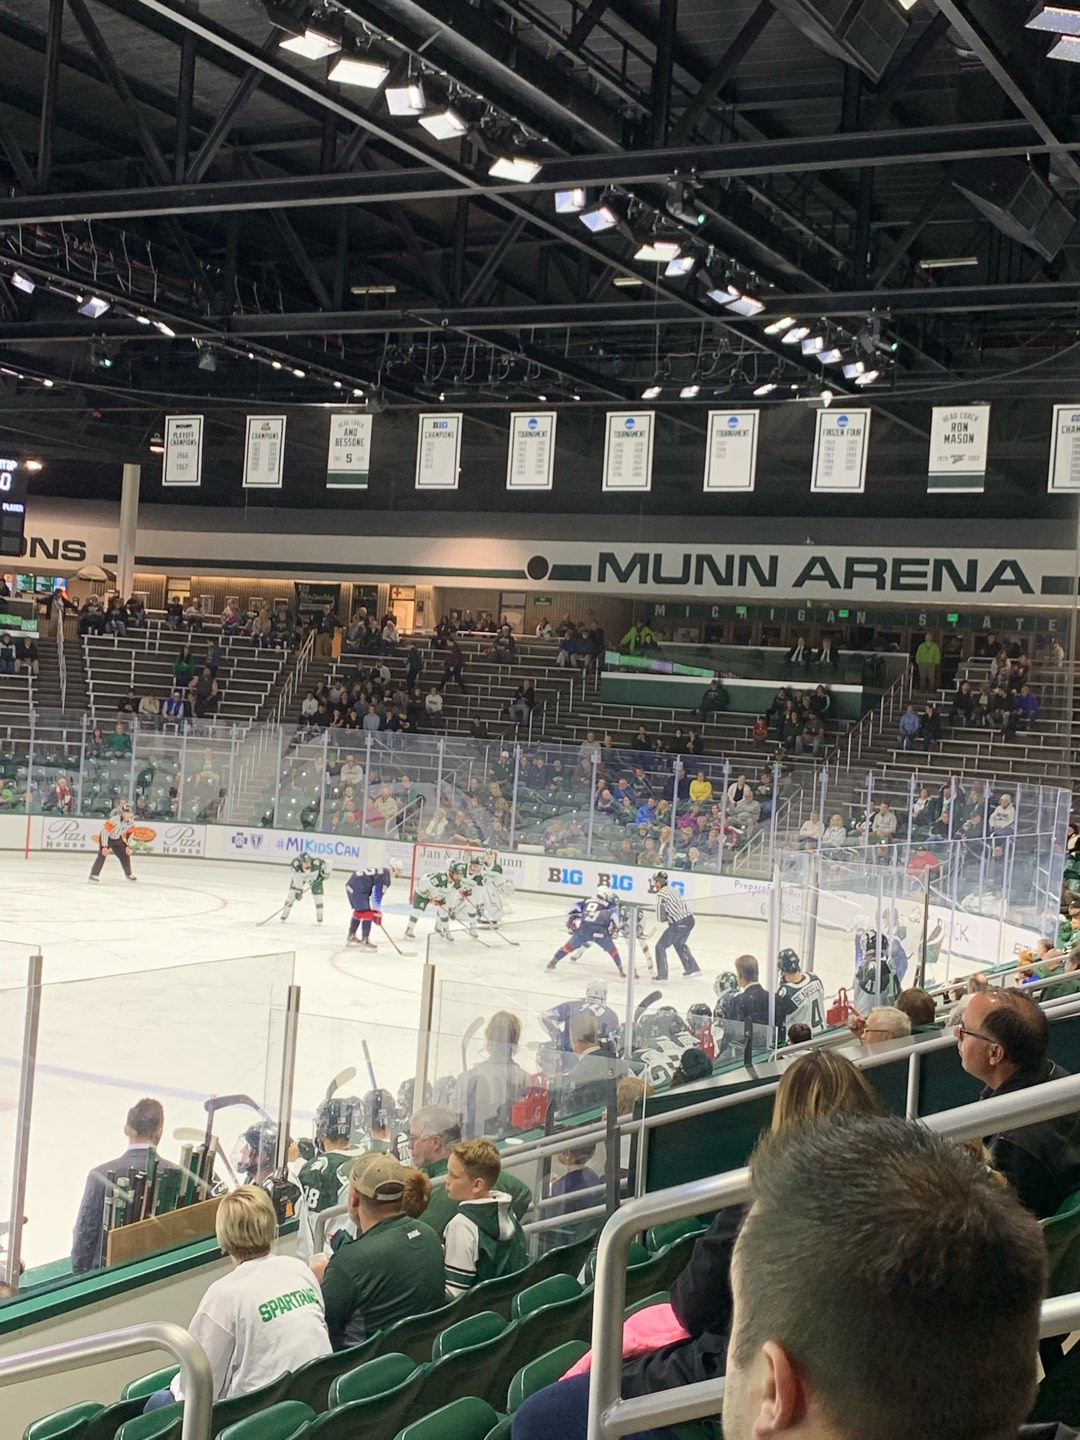 Munn Ice Arena Section V Row 9 Seat 5